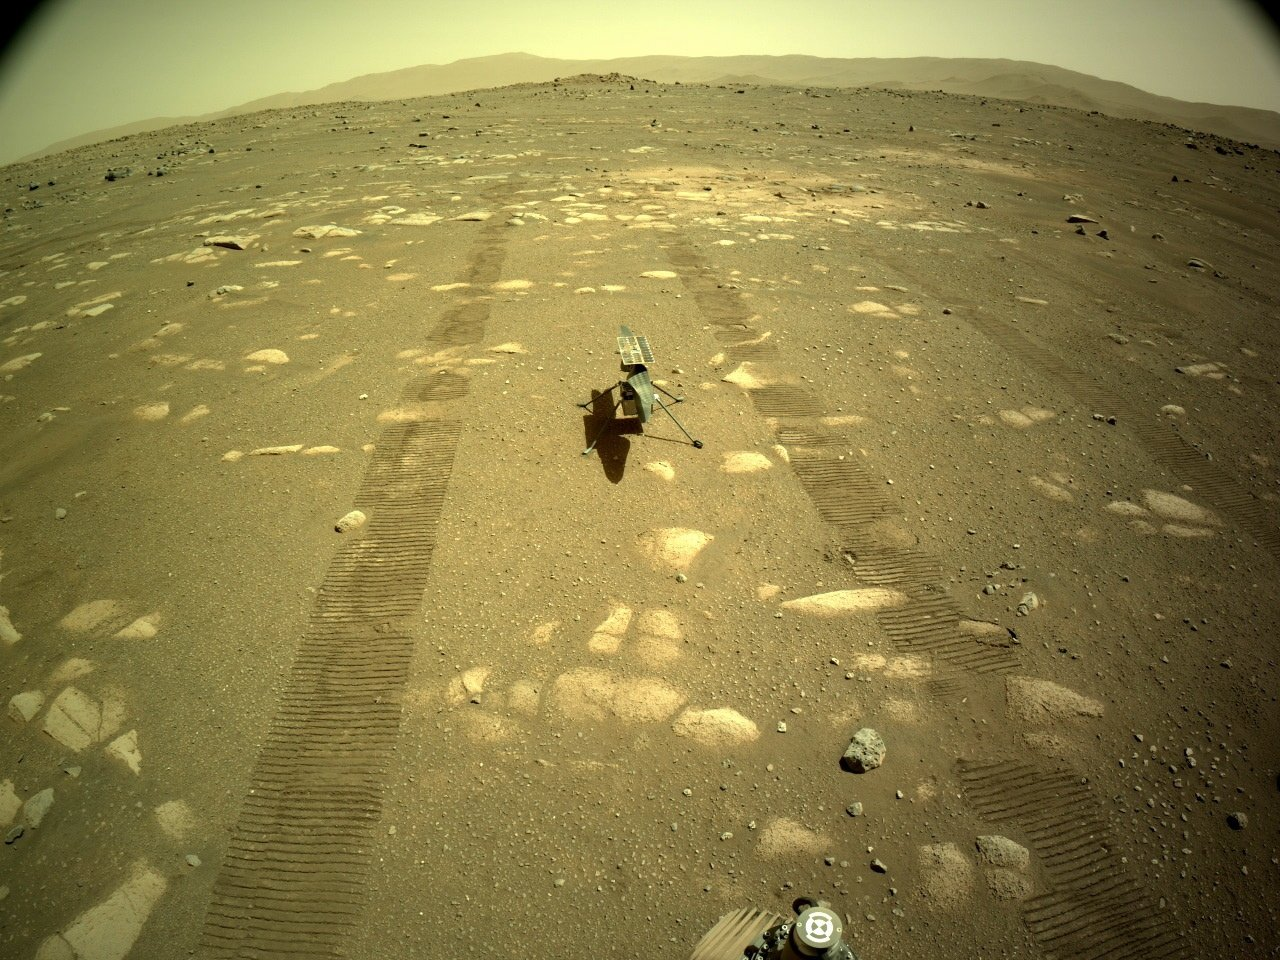 A handout photo made available by NASA shows an image of NASA's Ingenuity Helicopter acquired by NASA's Perseverance Mars rover using its onboard Left Navigation Camera (Navcam), on Sol 44, April 5, 2021. (EPA/NASA/JPL-Caltech Photo)